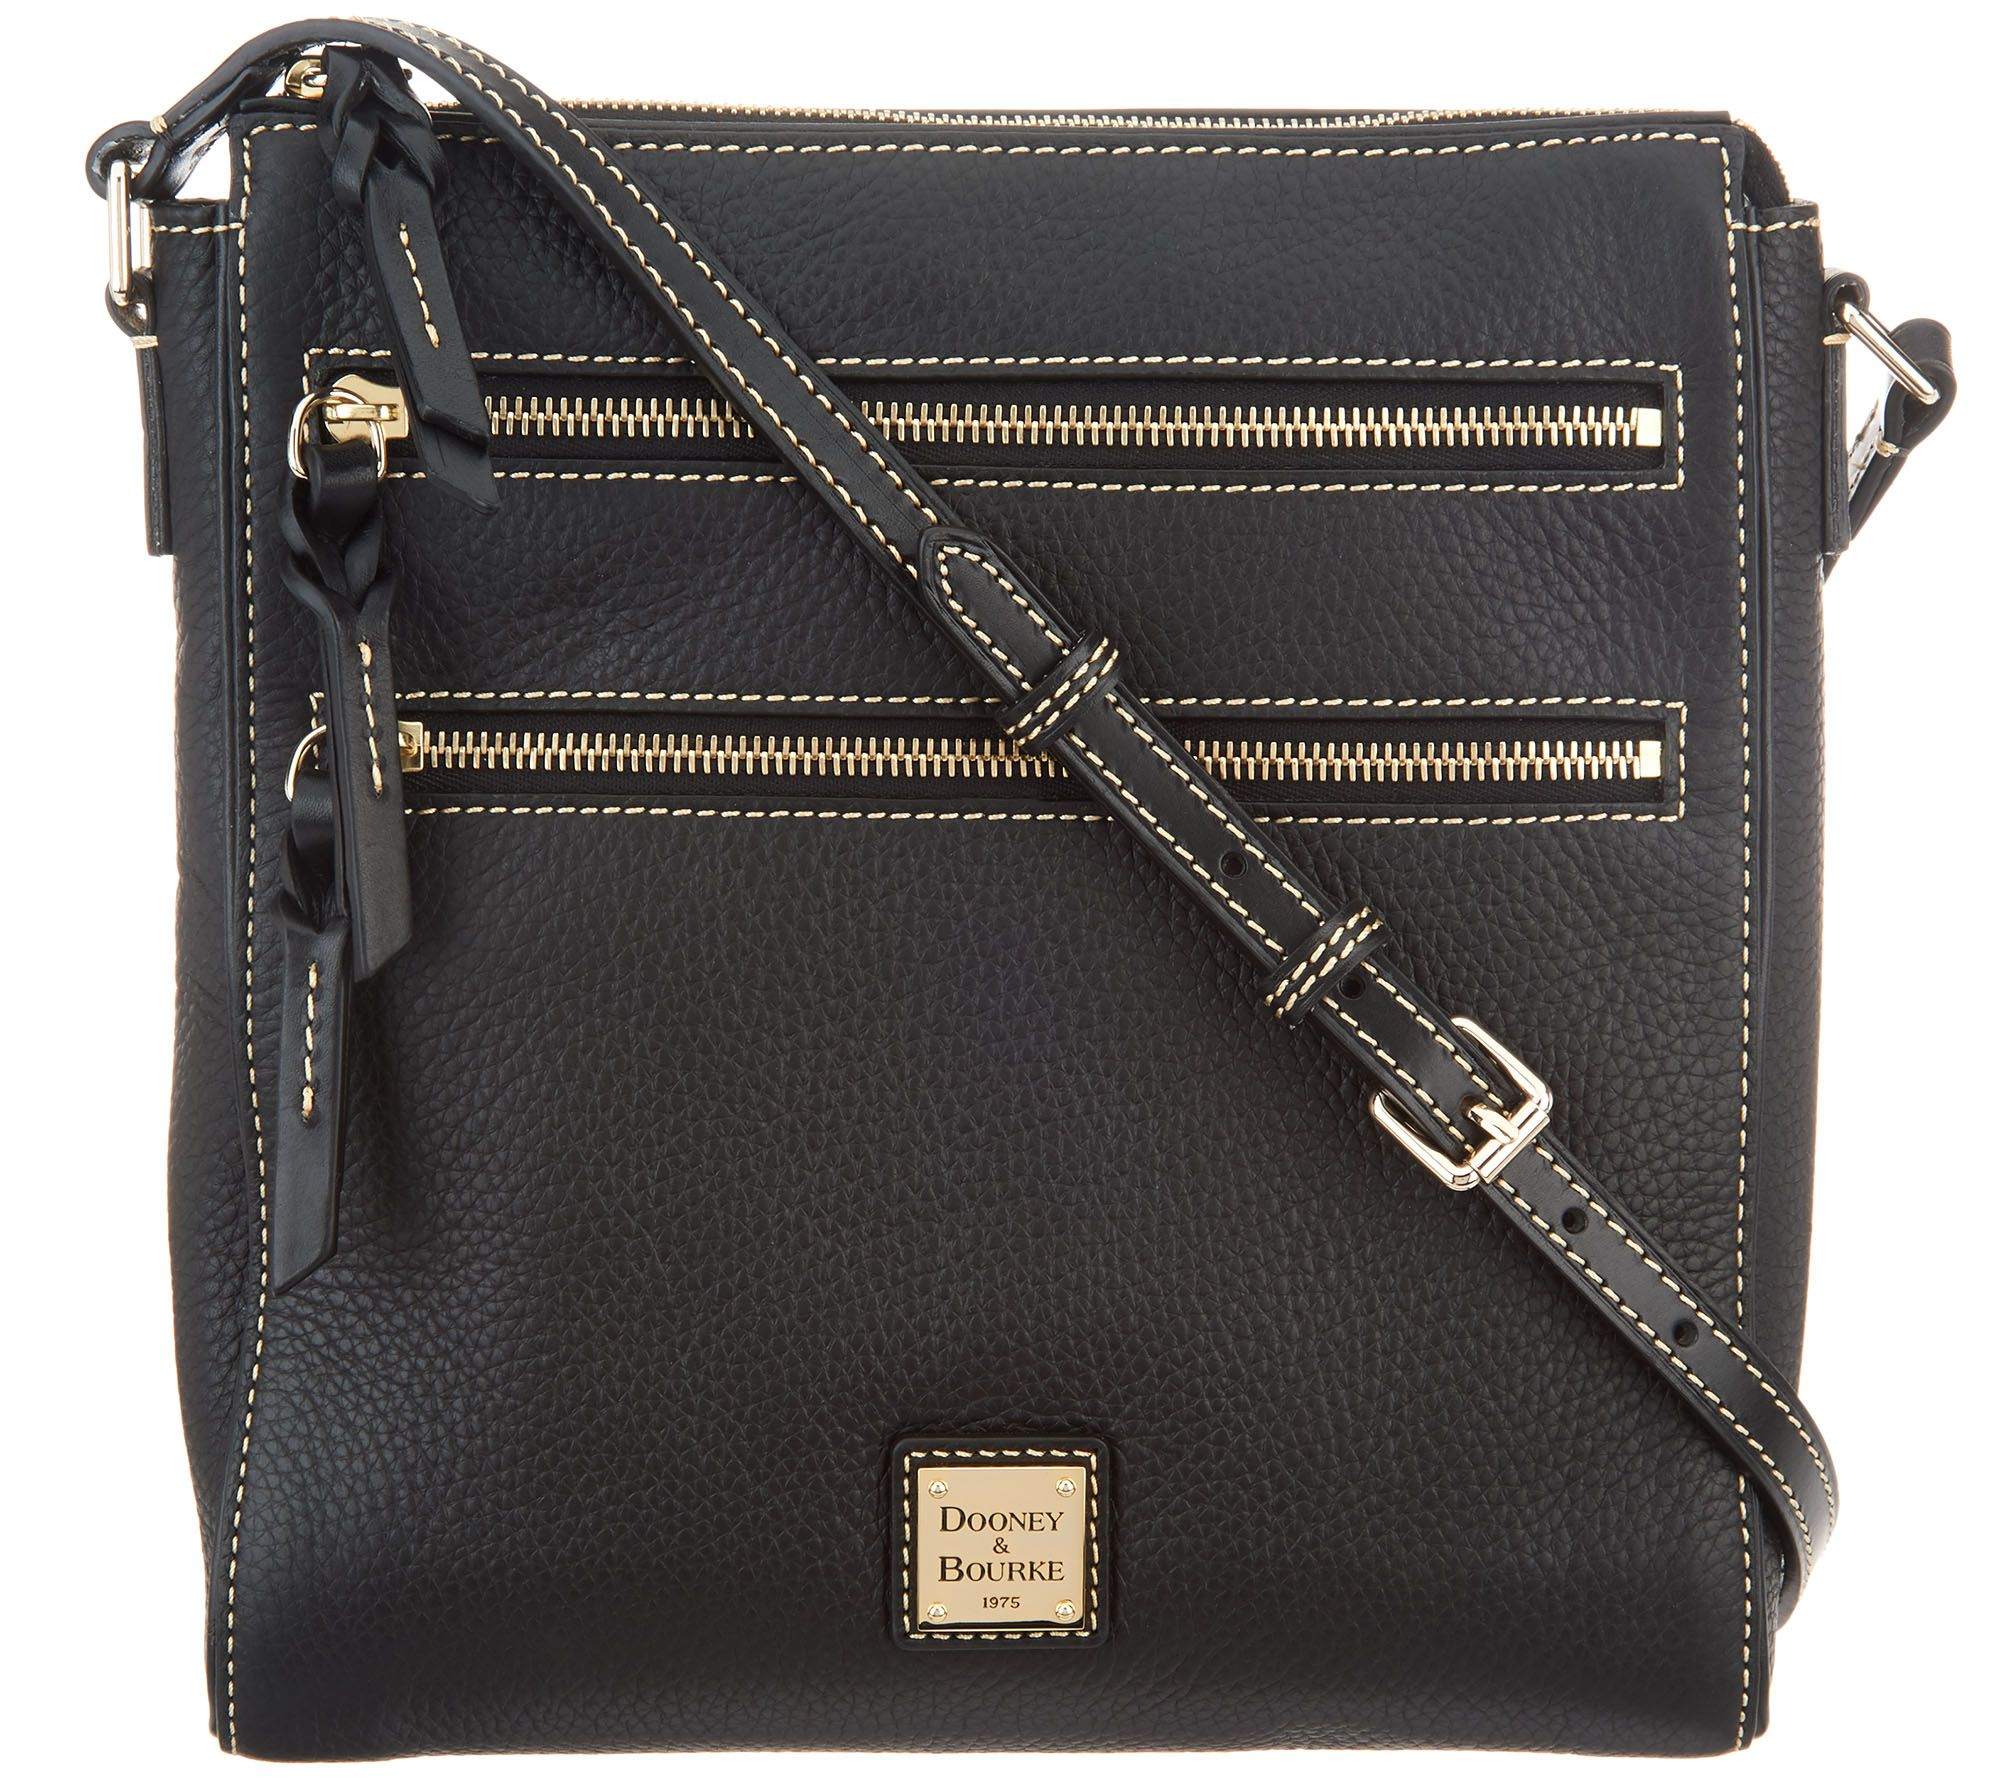 ca2c85f7 Dooney & Bourke Pebble Leather Triple Zip Crossbody Handbag — QVC.com